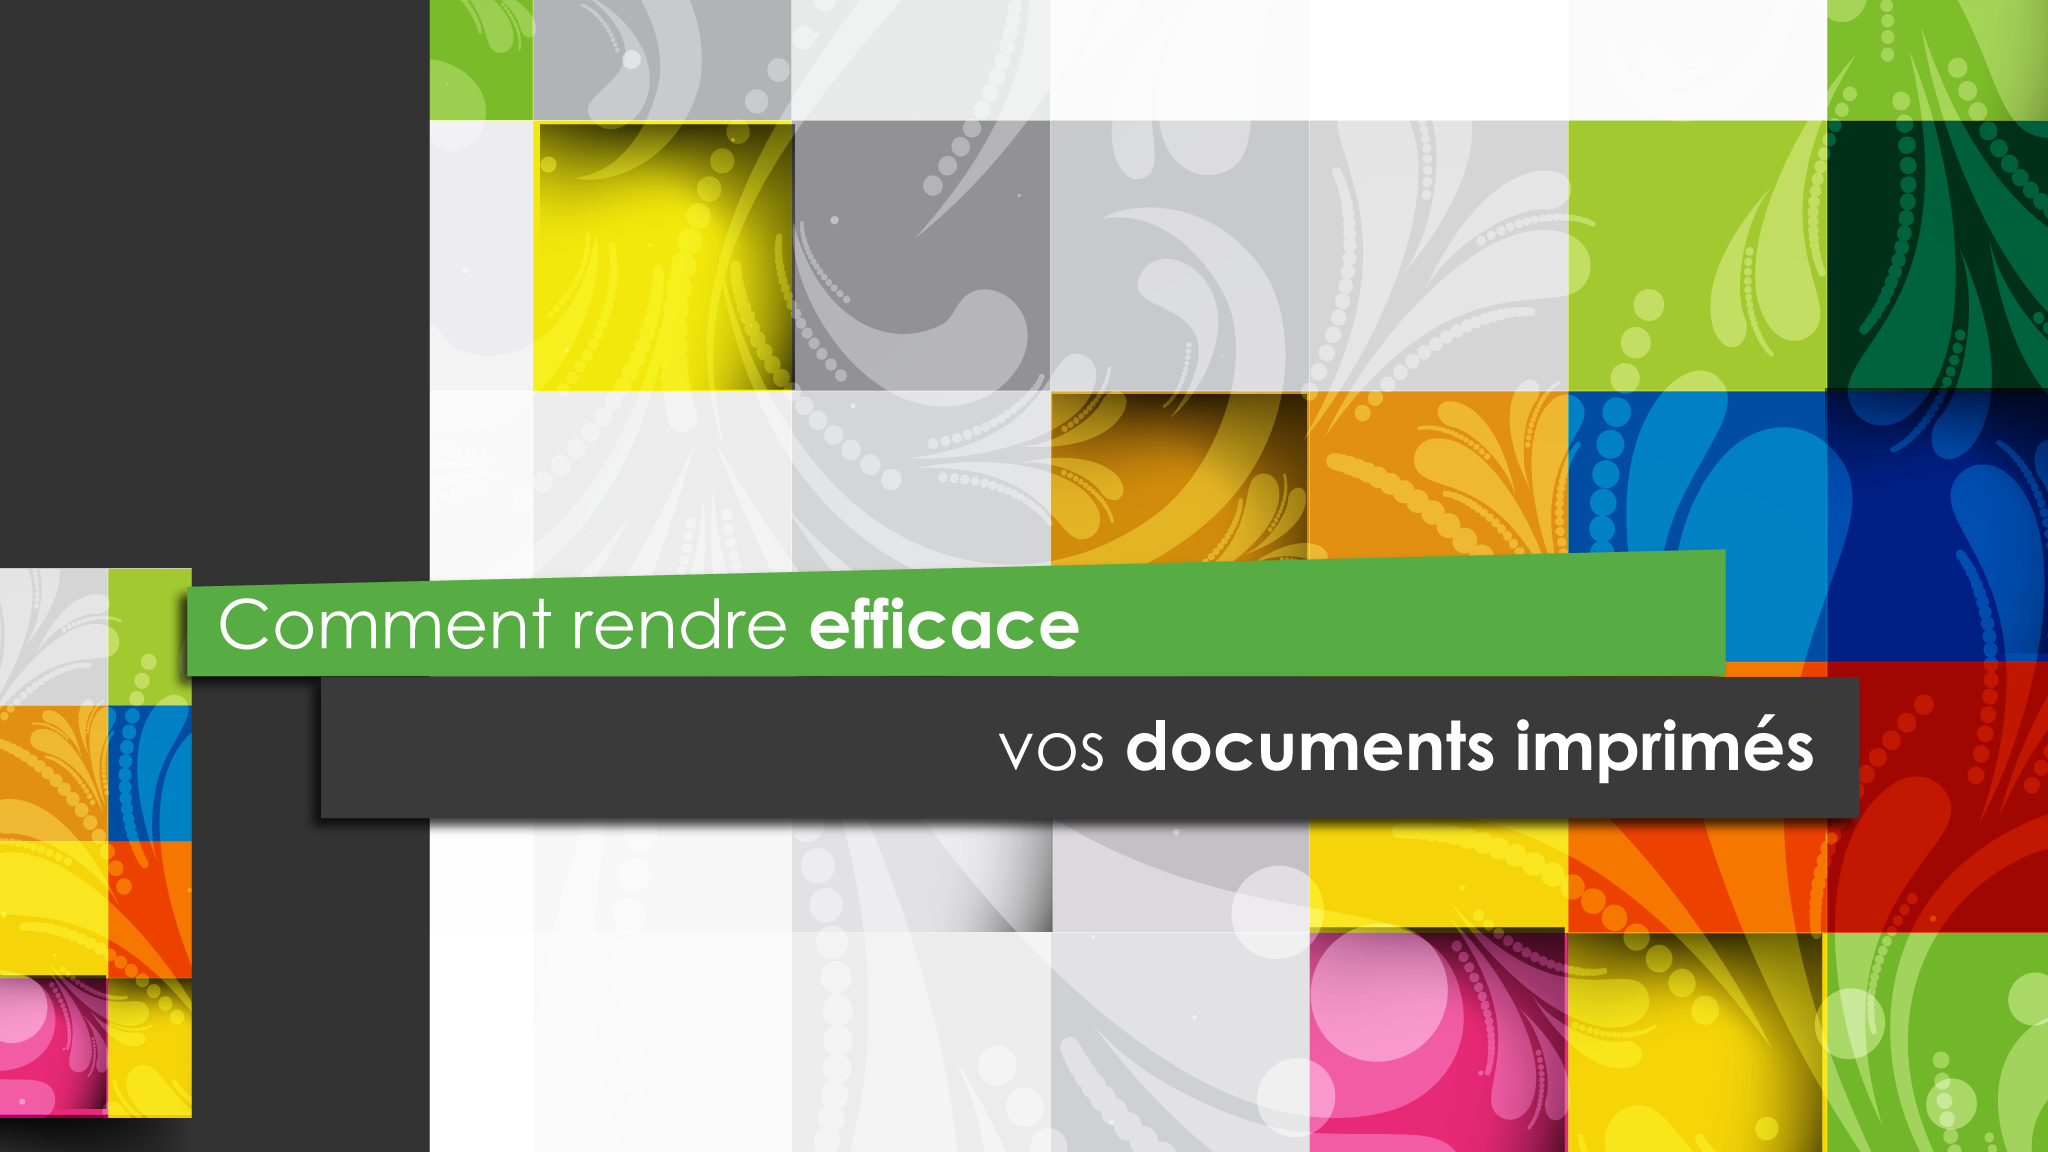 Documents publicitaires